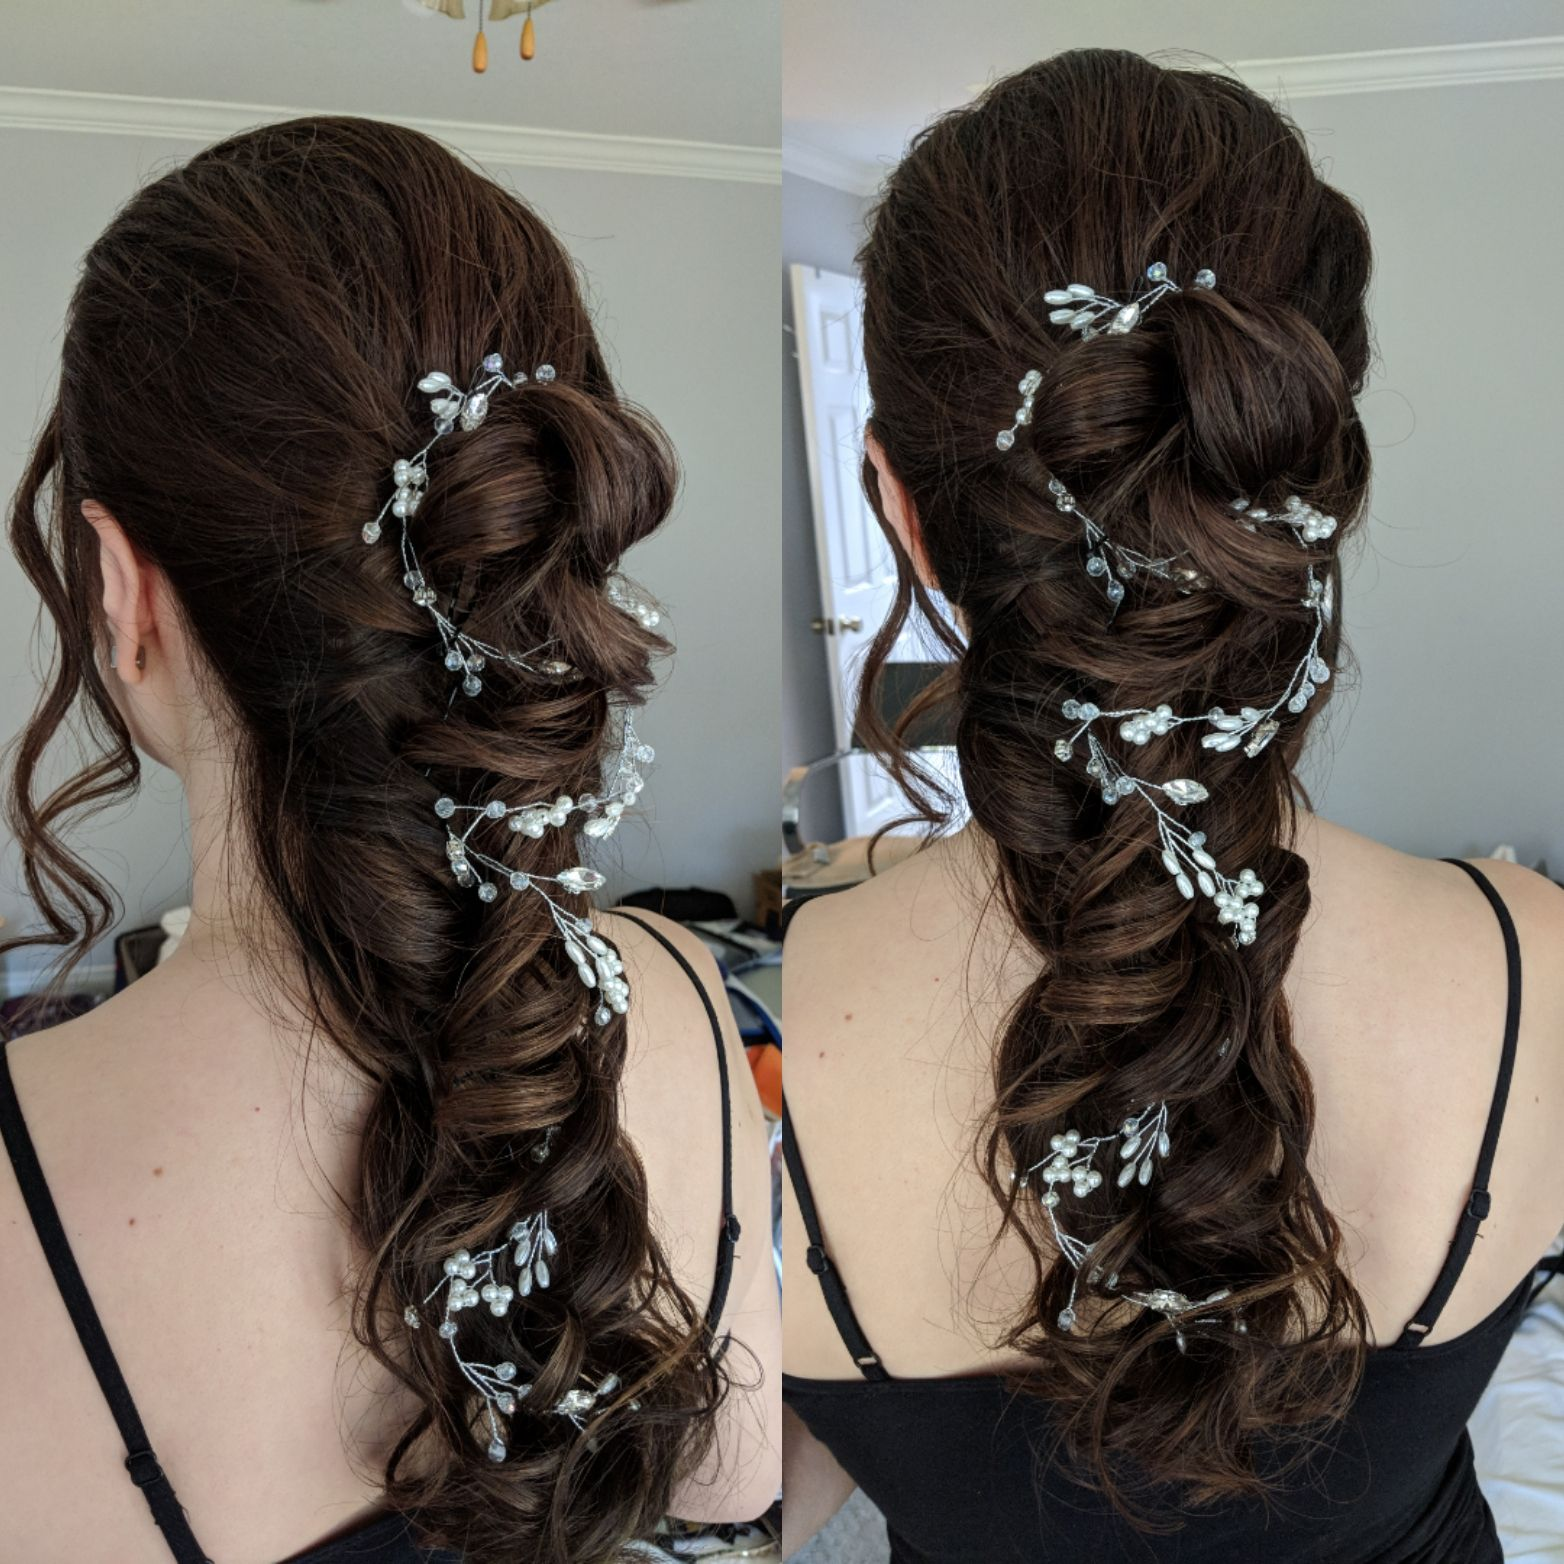 this lovely asian bride had hair like silk, so we did a long